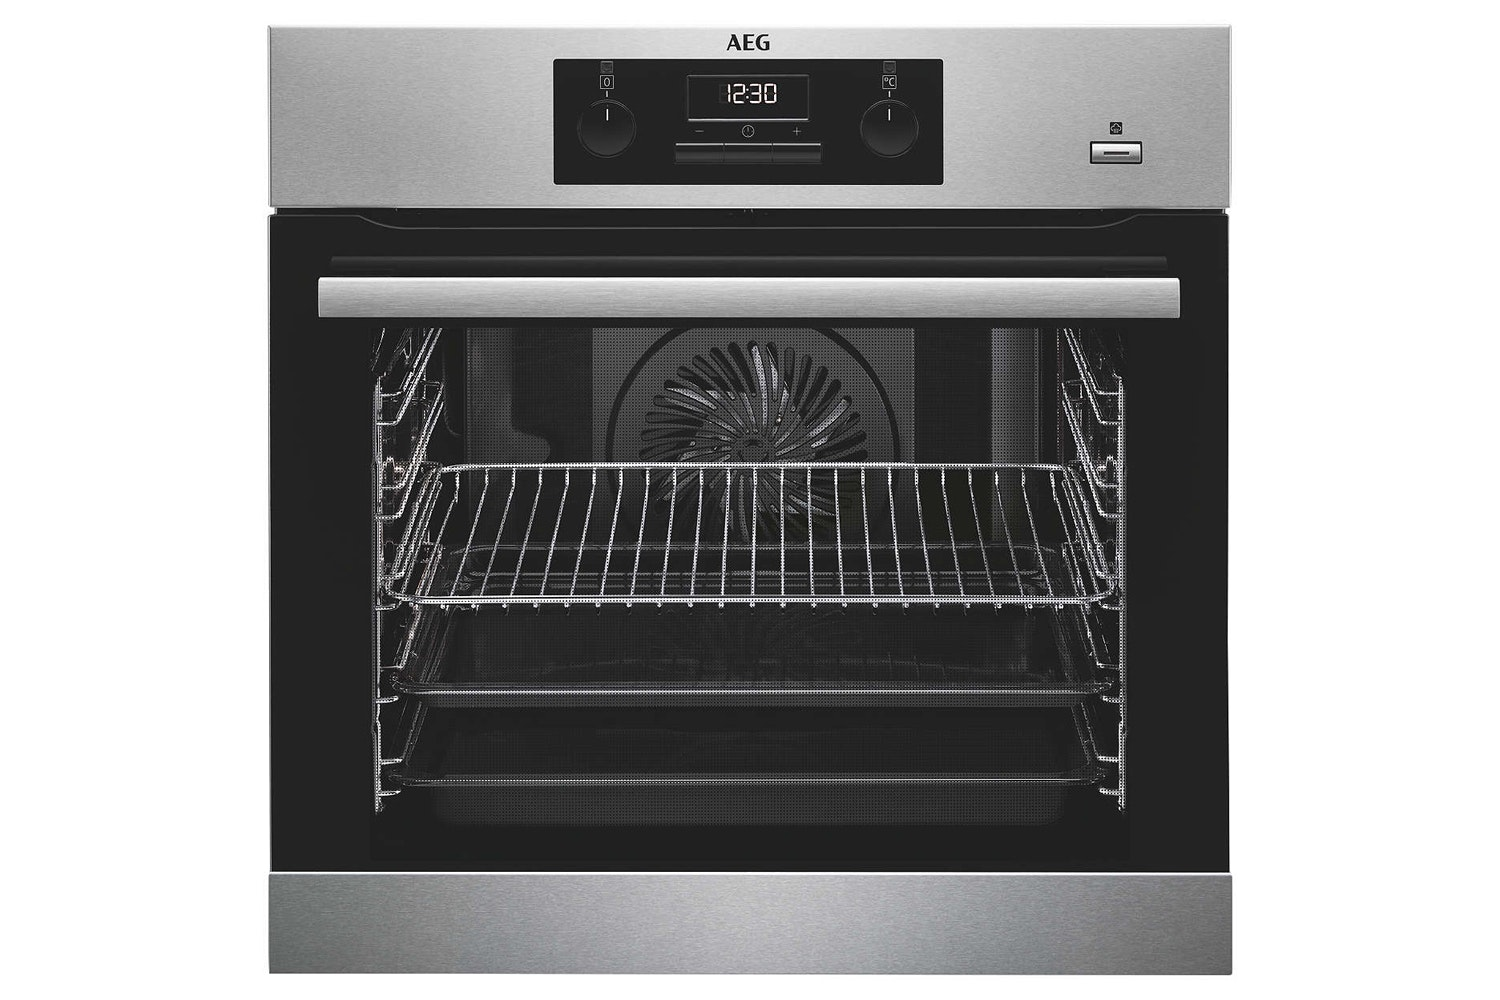 AEG SteamBake Built-in Single Oven | BES351010M